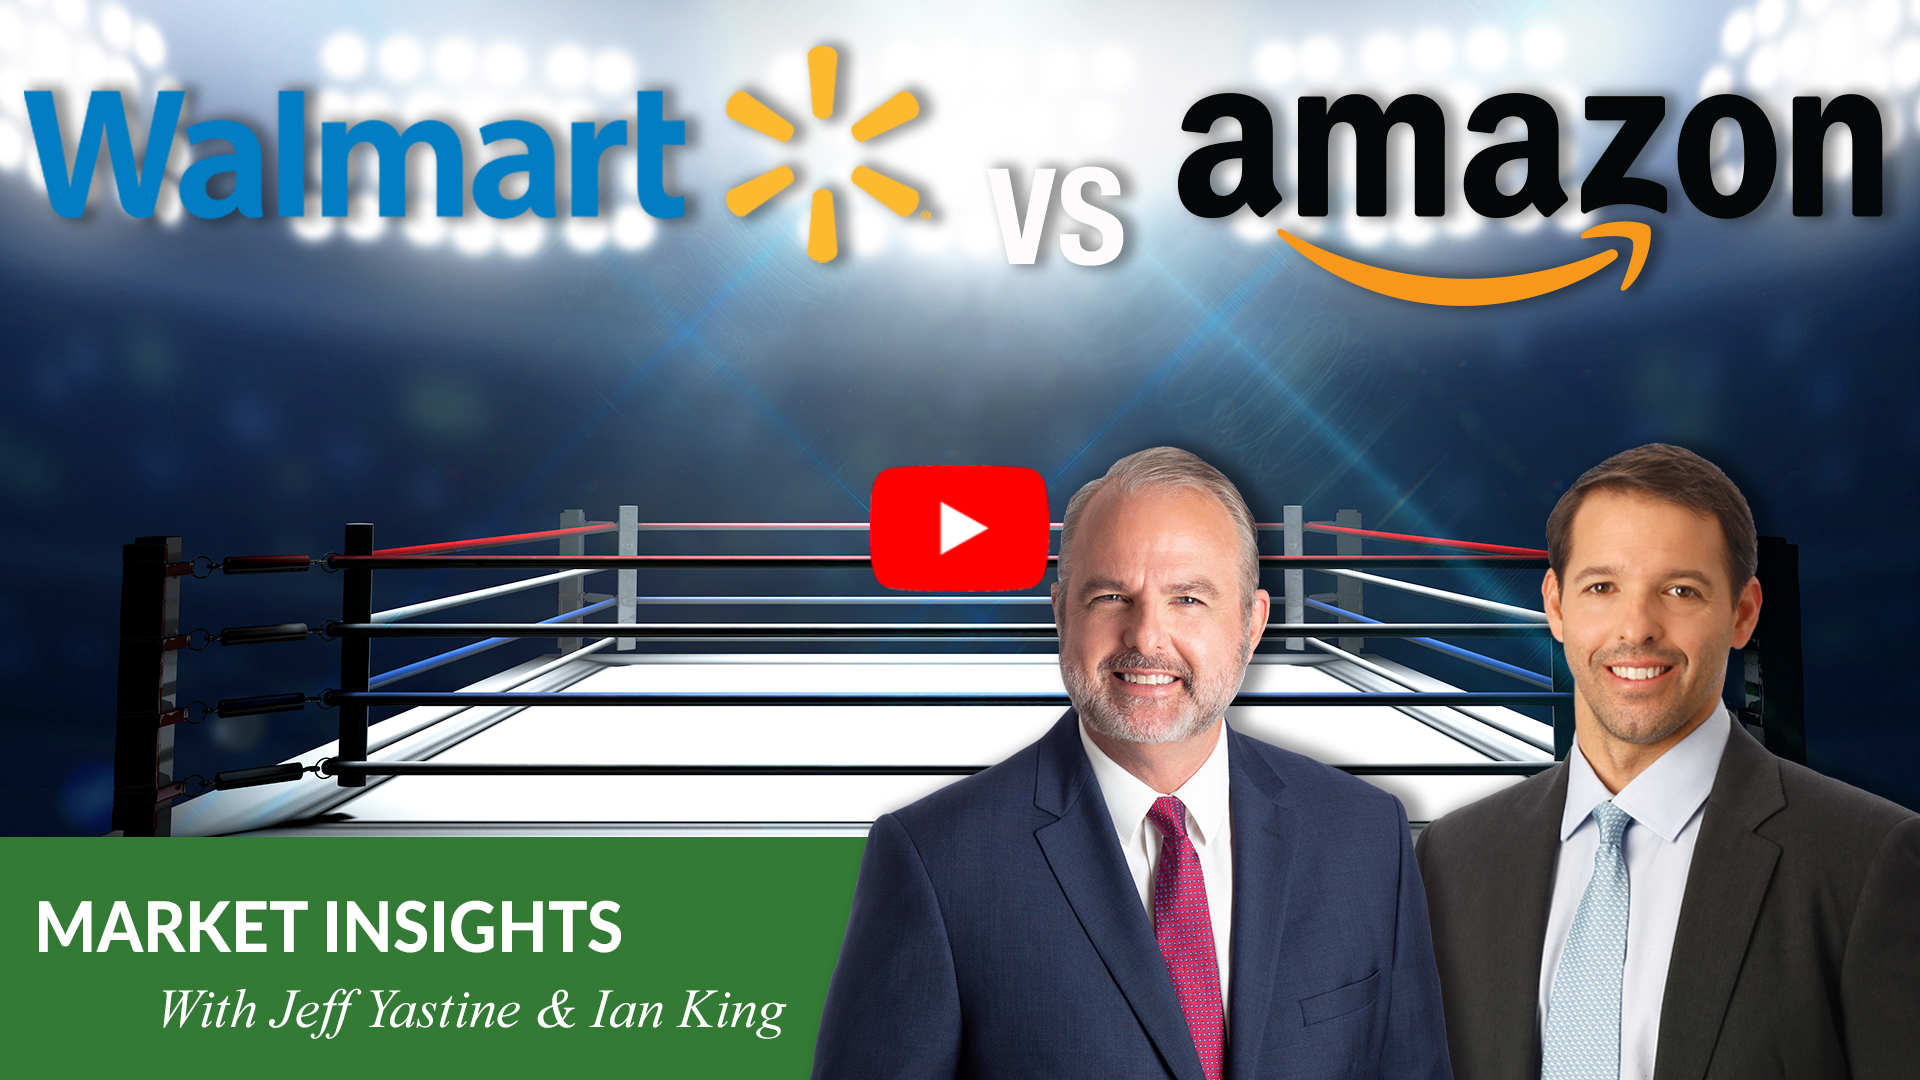 In today's Market Insights, I discuss Walmart's recent success with my friend and colleague Jeff Yastine … as well as the company's ongoing battle with Amazon.